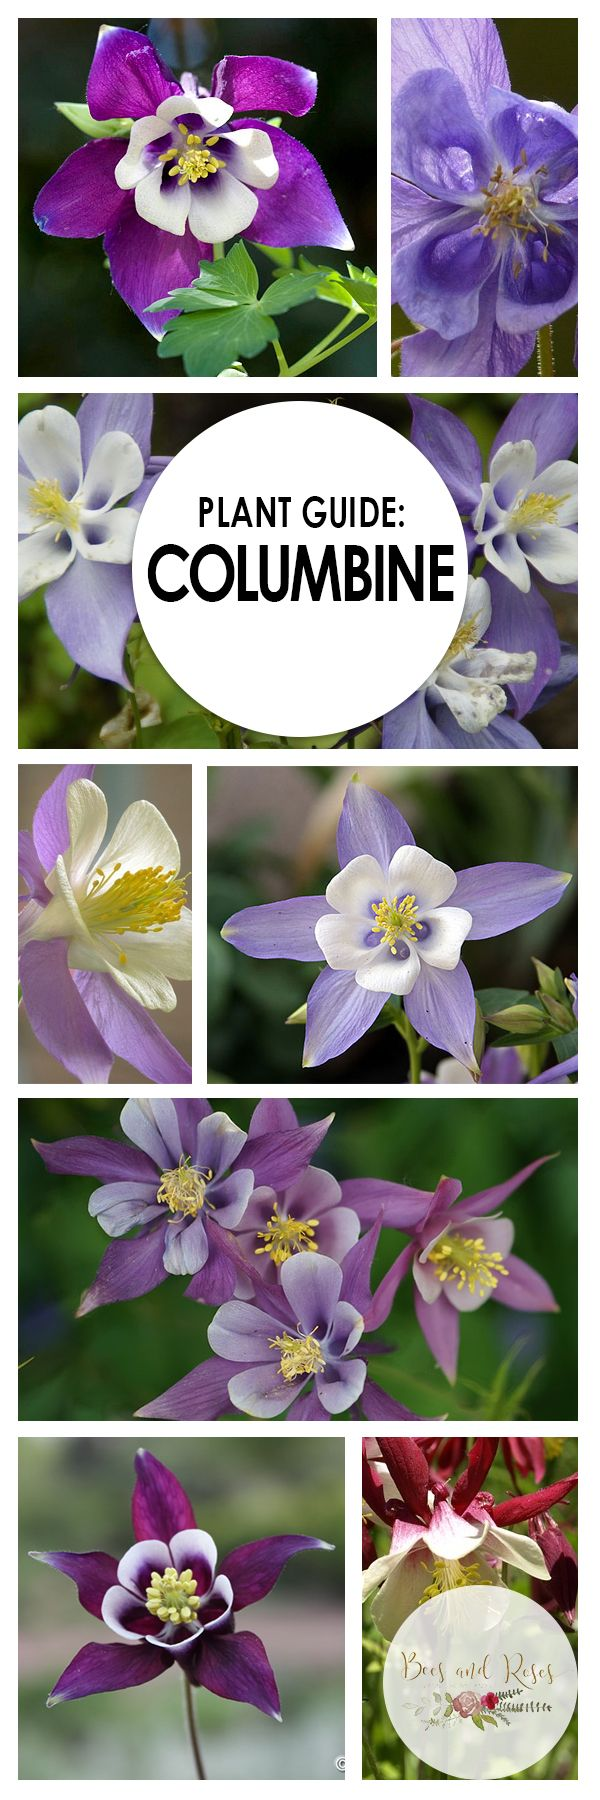 How to grow Columbine and other annual plants.